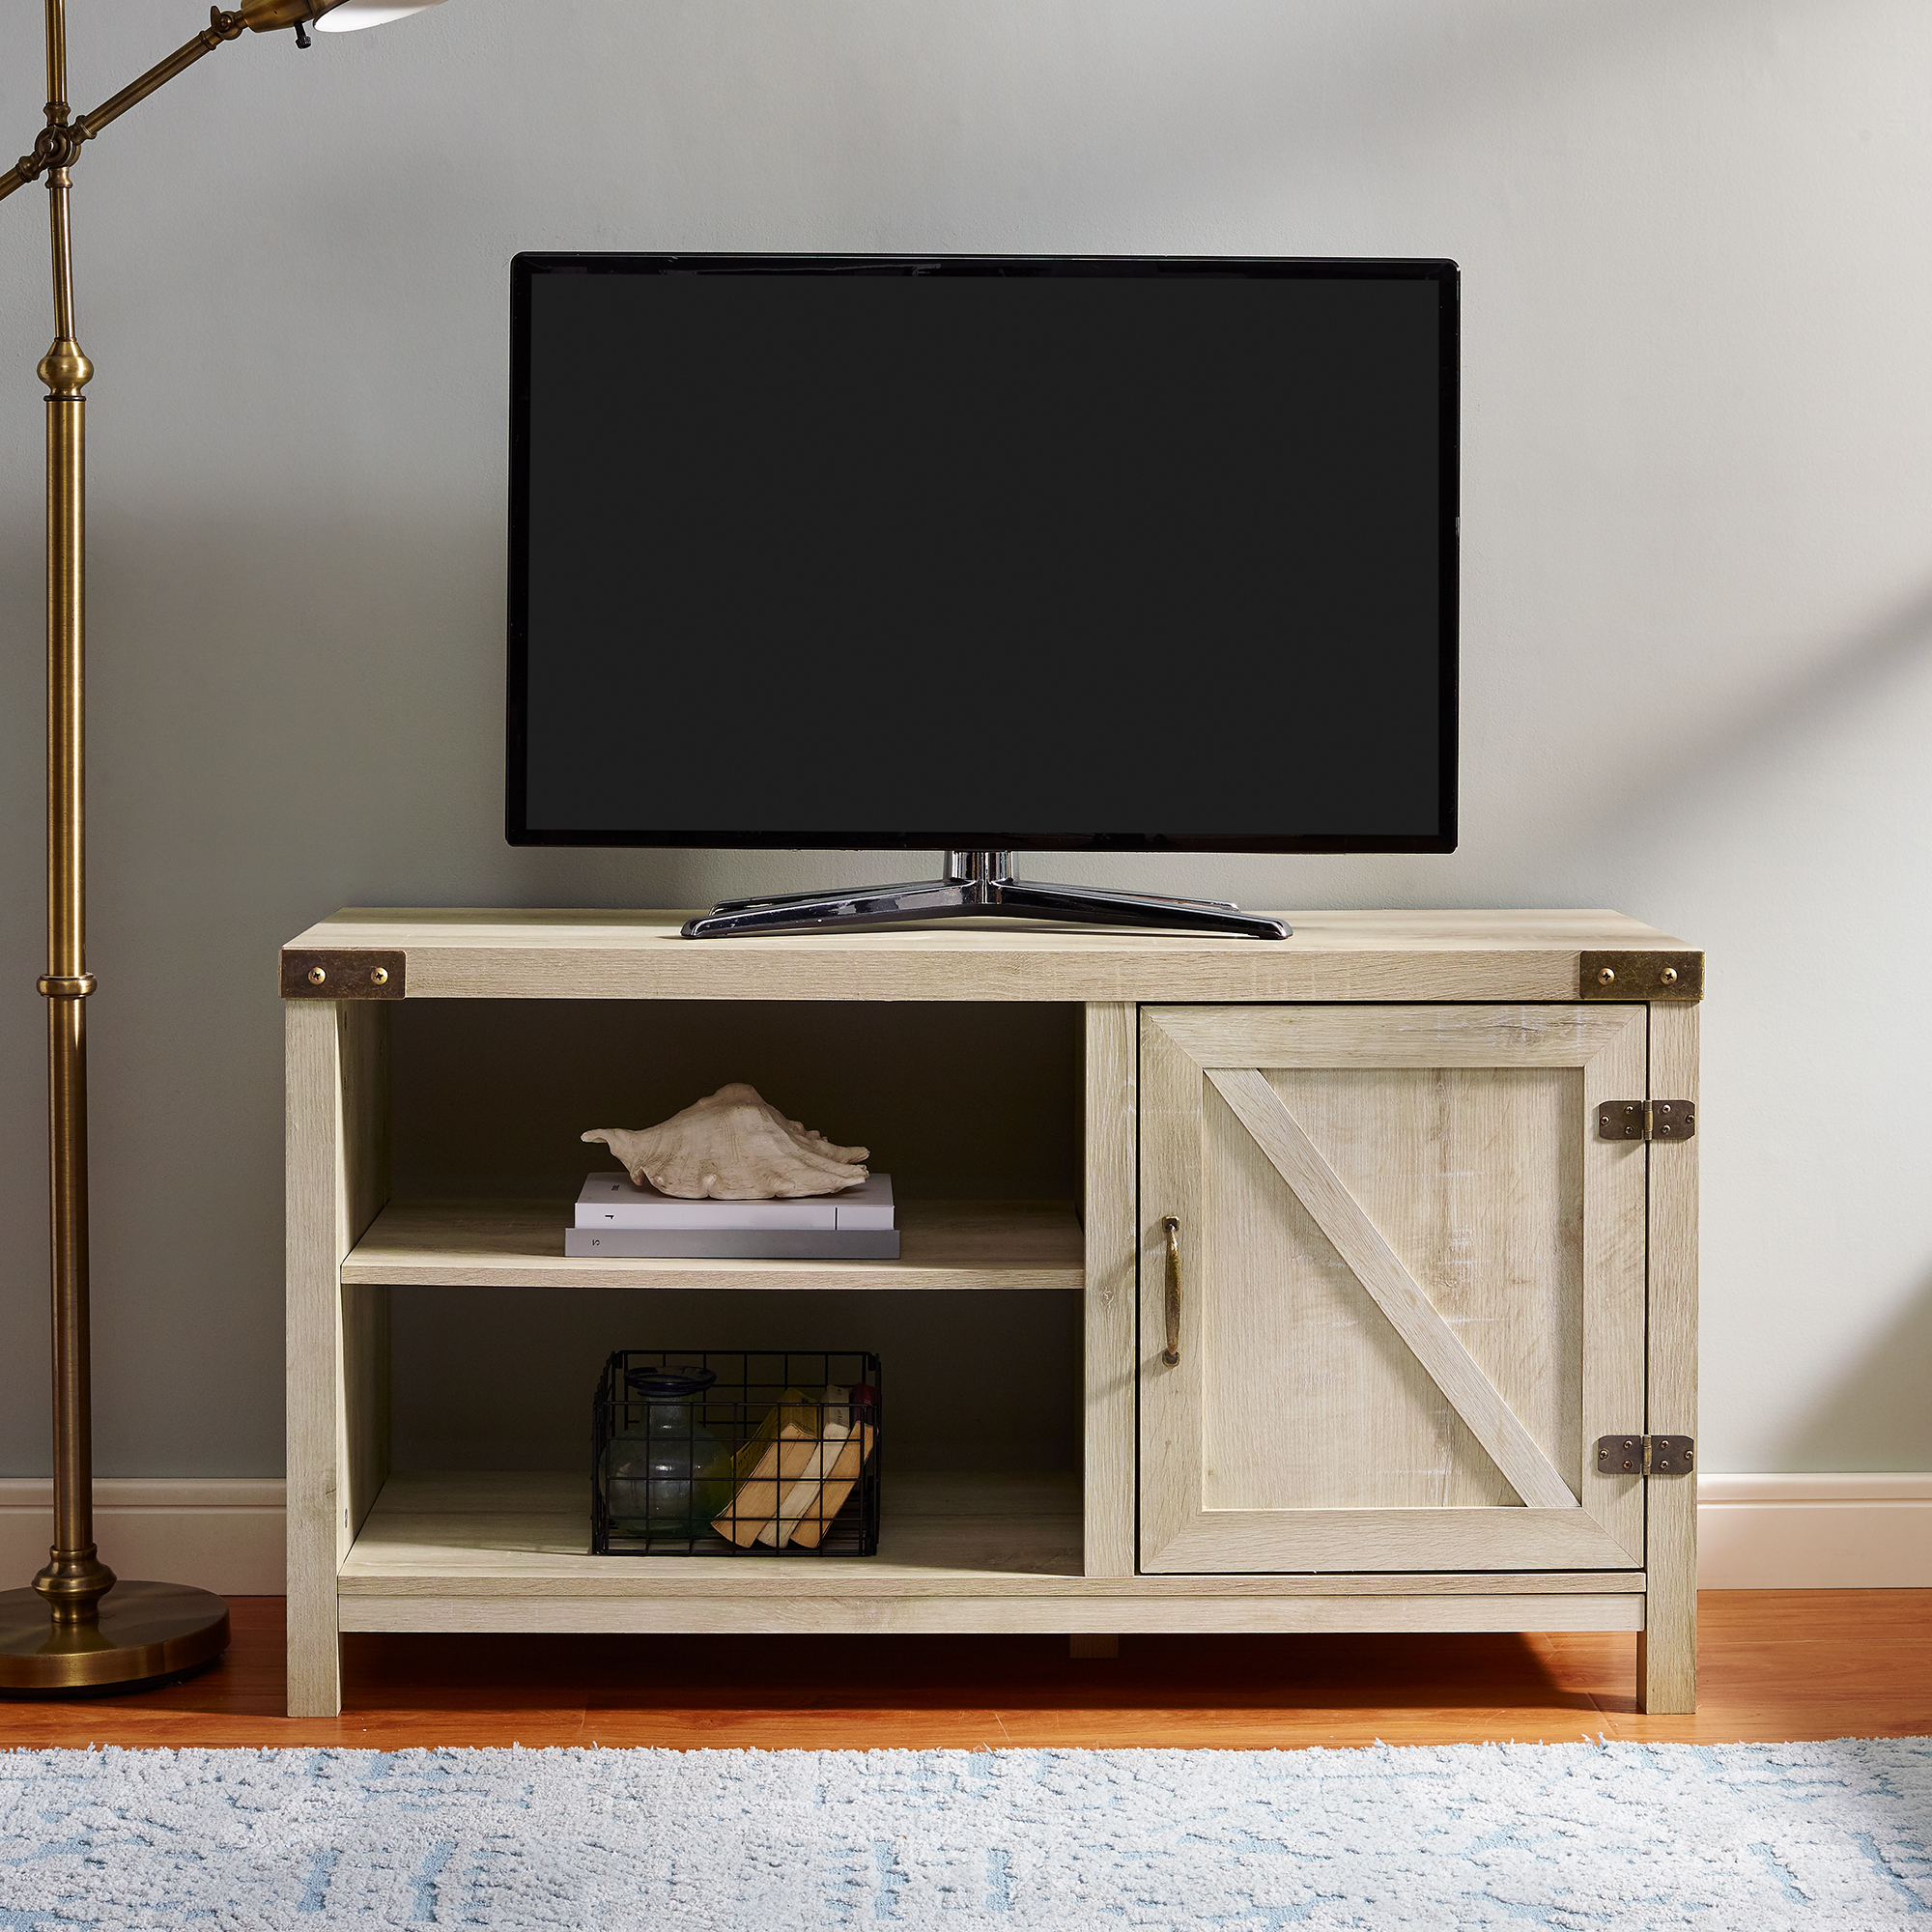 """Current Woven Paths Farmhouse Barn Door Tv Stand For Tvs Up To 50 For Lansing Tv Stands For Tvs Up To 50"""" (View 2 of 25)"""